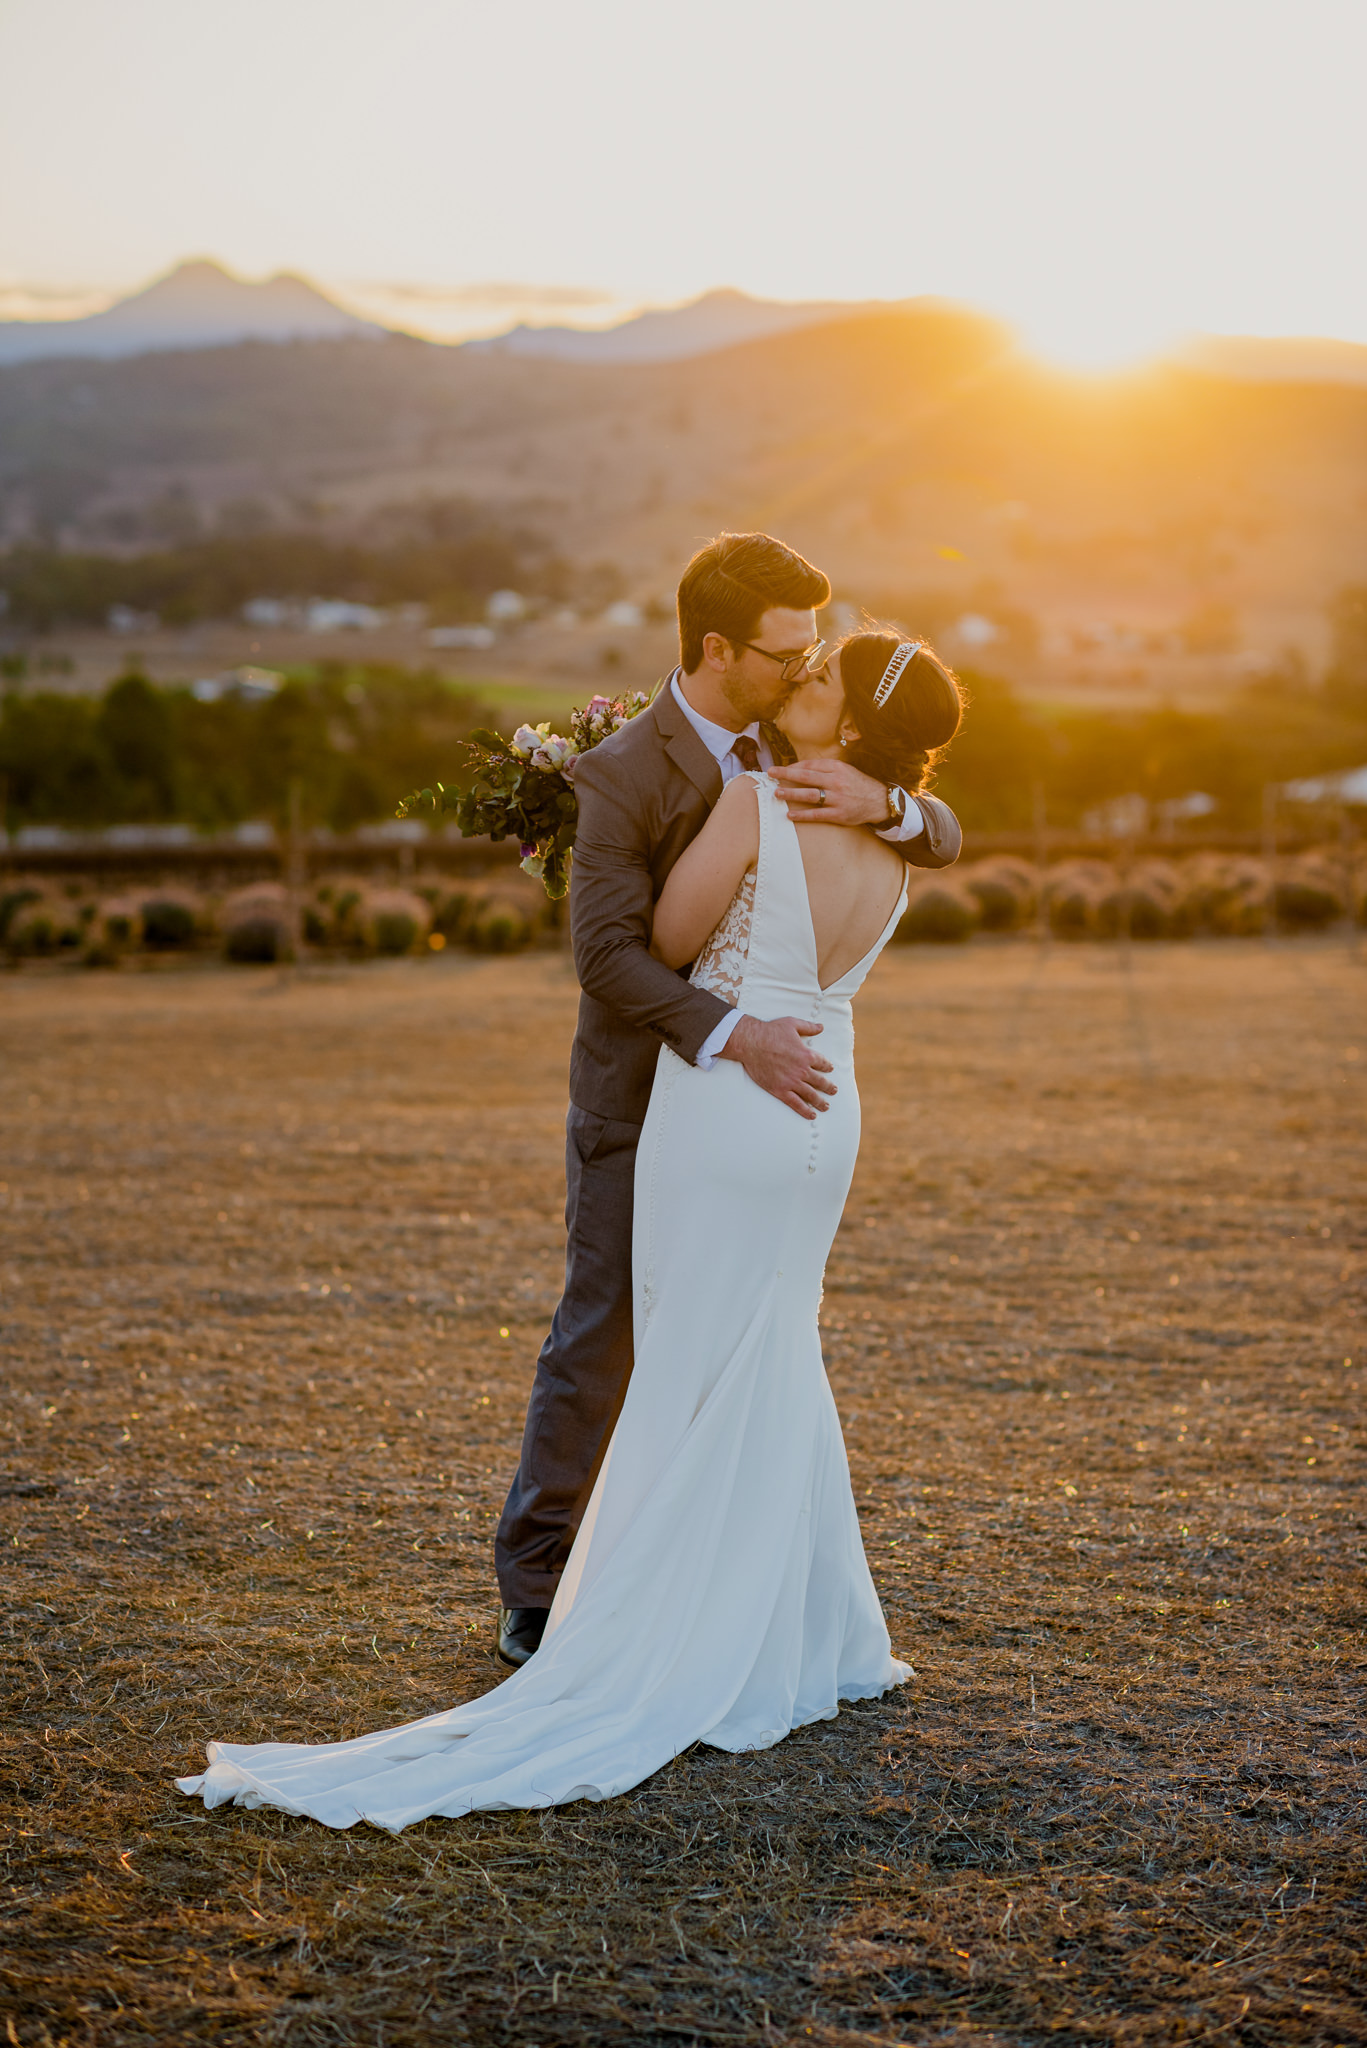 A bride and groom holding each other and kissing in front of a lavender farm